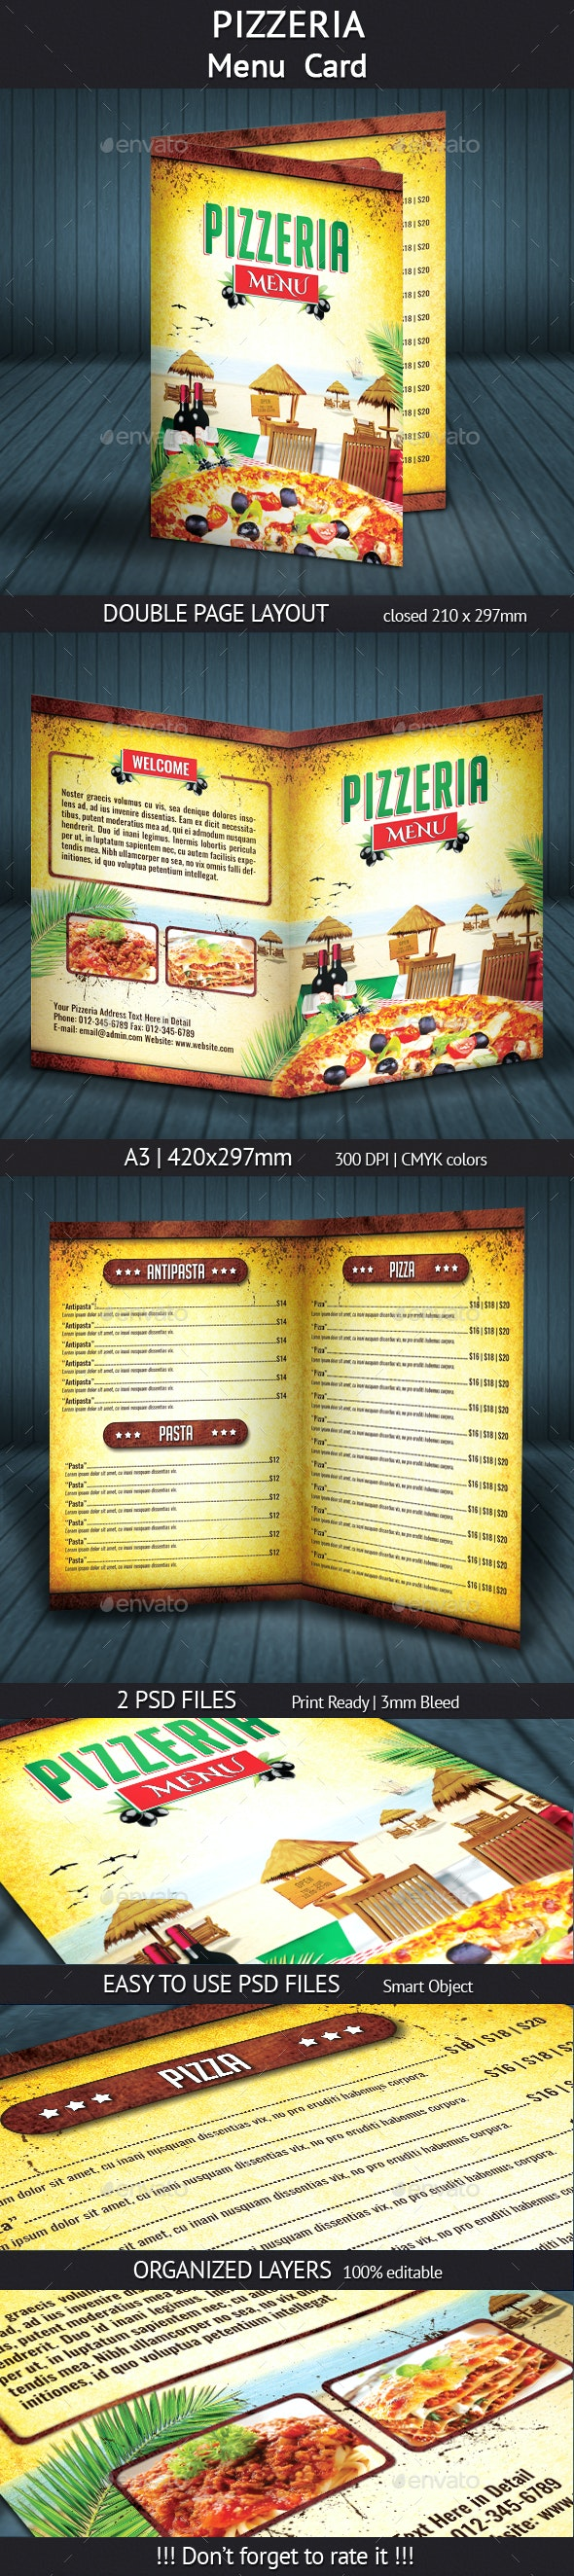 Pizzeria Menu Card (A4)